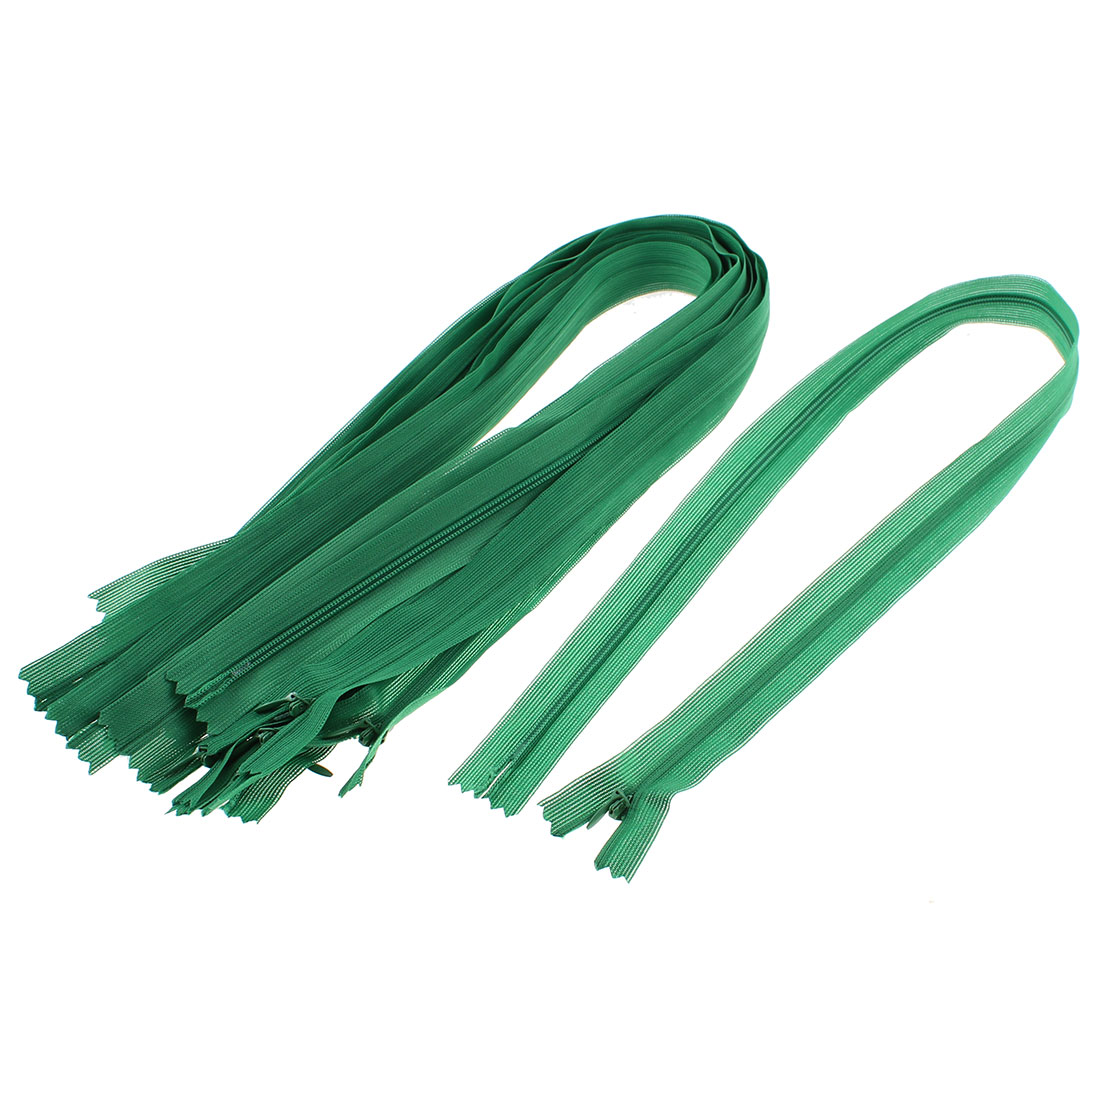 Green Nylon Coil Close End Zippers Tailor Sewing Tools 24-inch 10 Pcs